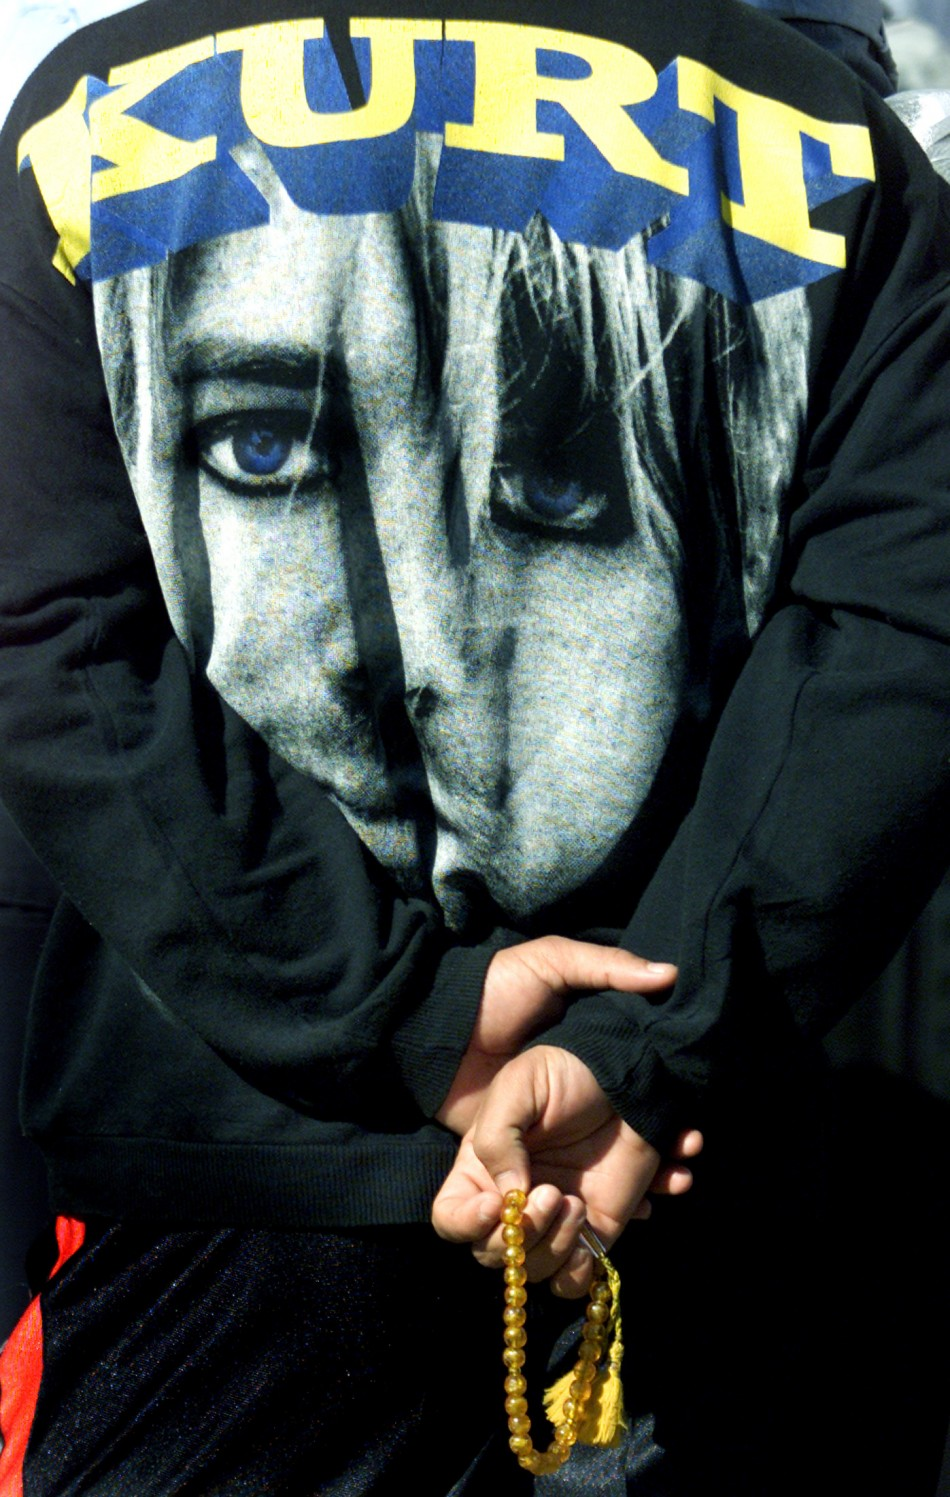 An Iraqi policeman, wearing a shirt emblazoned with a picture of the rock band Nirvanas late frontman Kurt Cobain